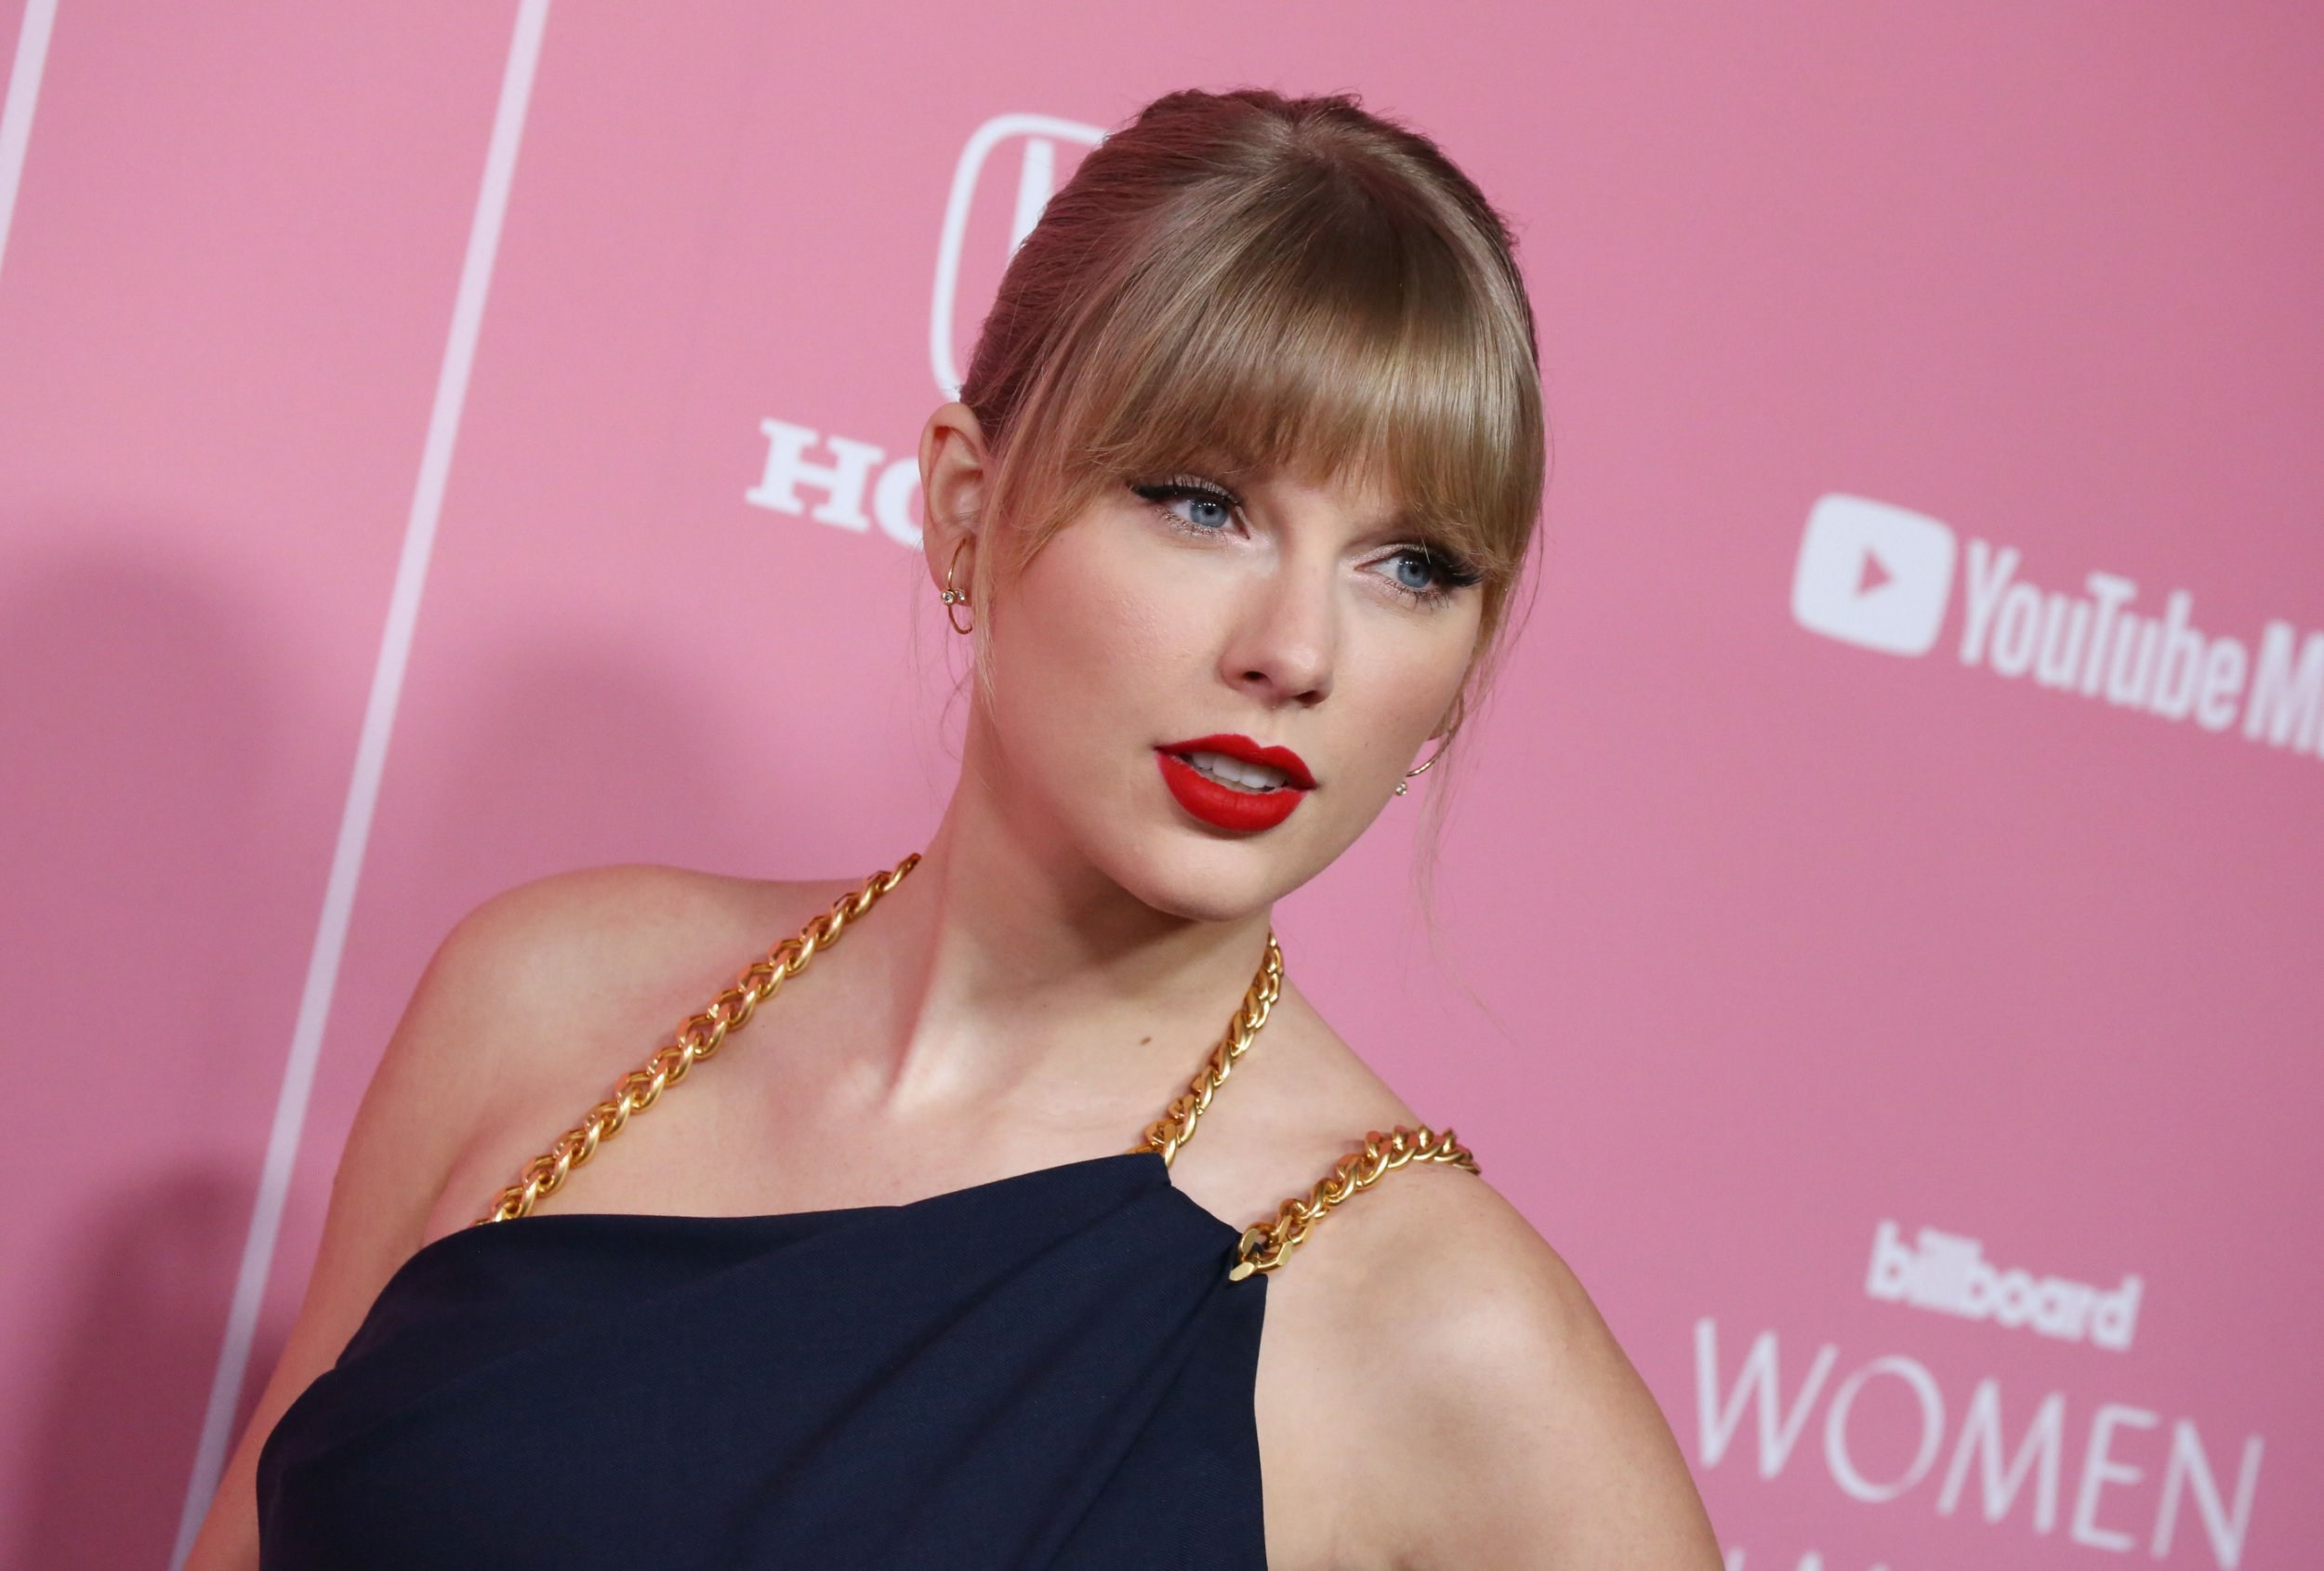 Taylor Swift donates $13,000 each to two mums struggling financially during pandemic